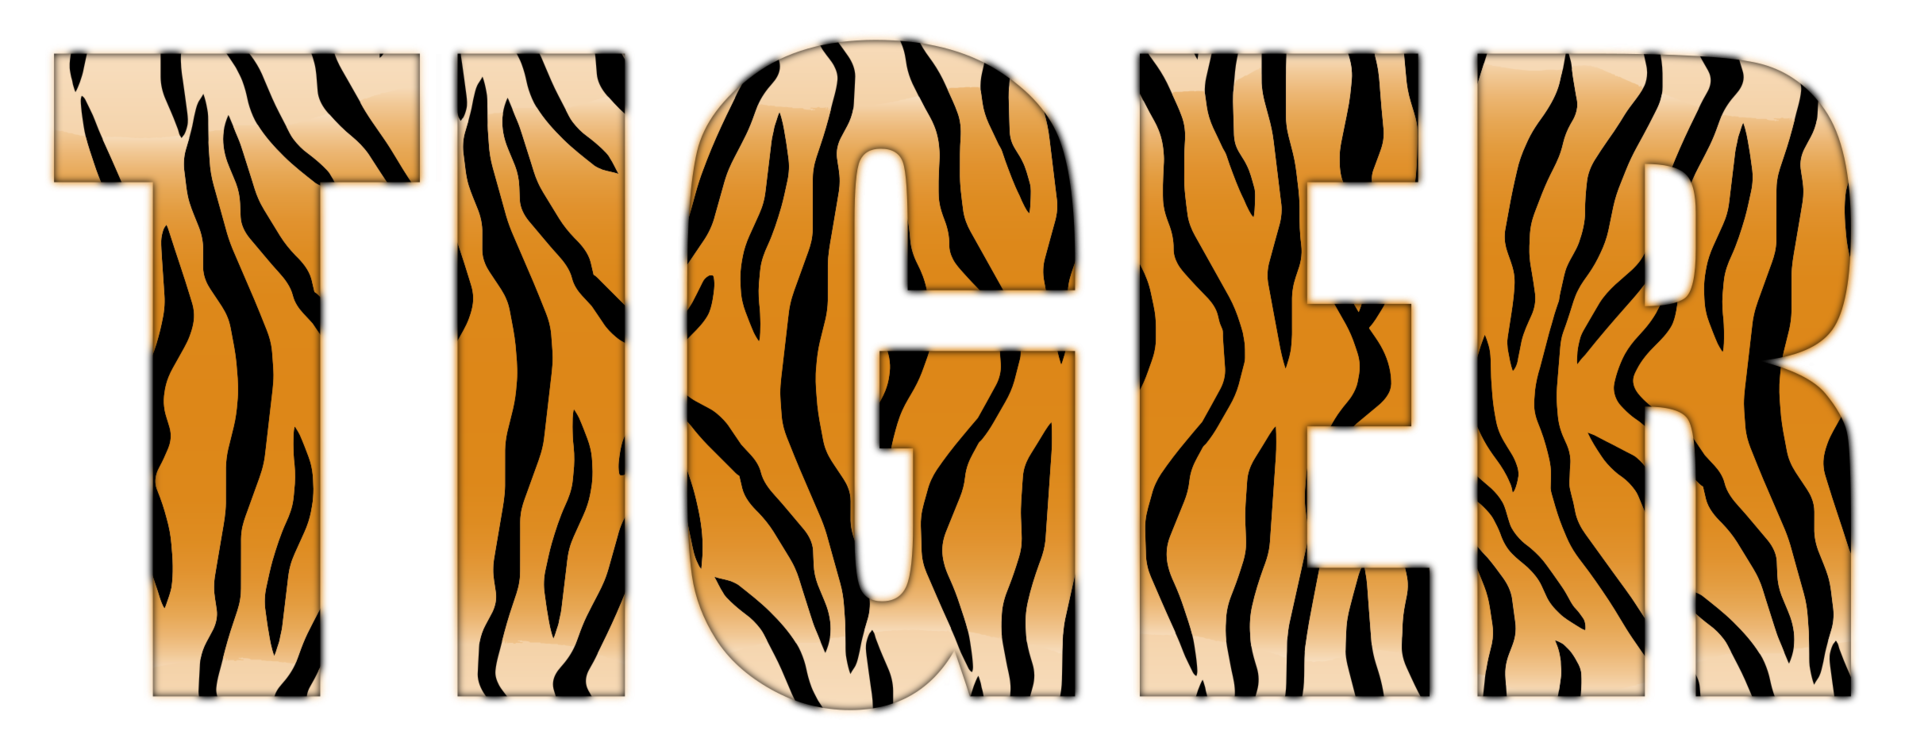 Tiger Computer Icons Microsoft Word Typography Logo CC0 - Graphic